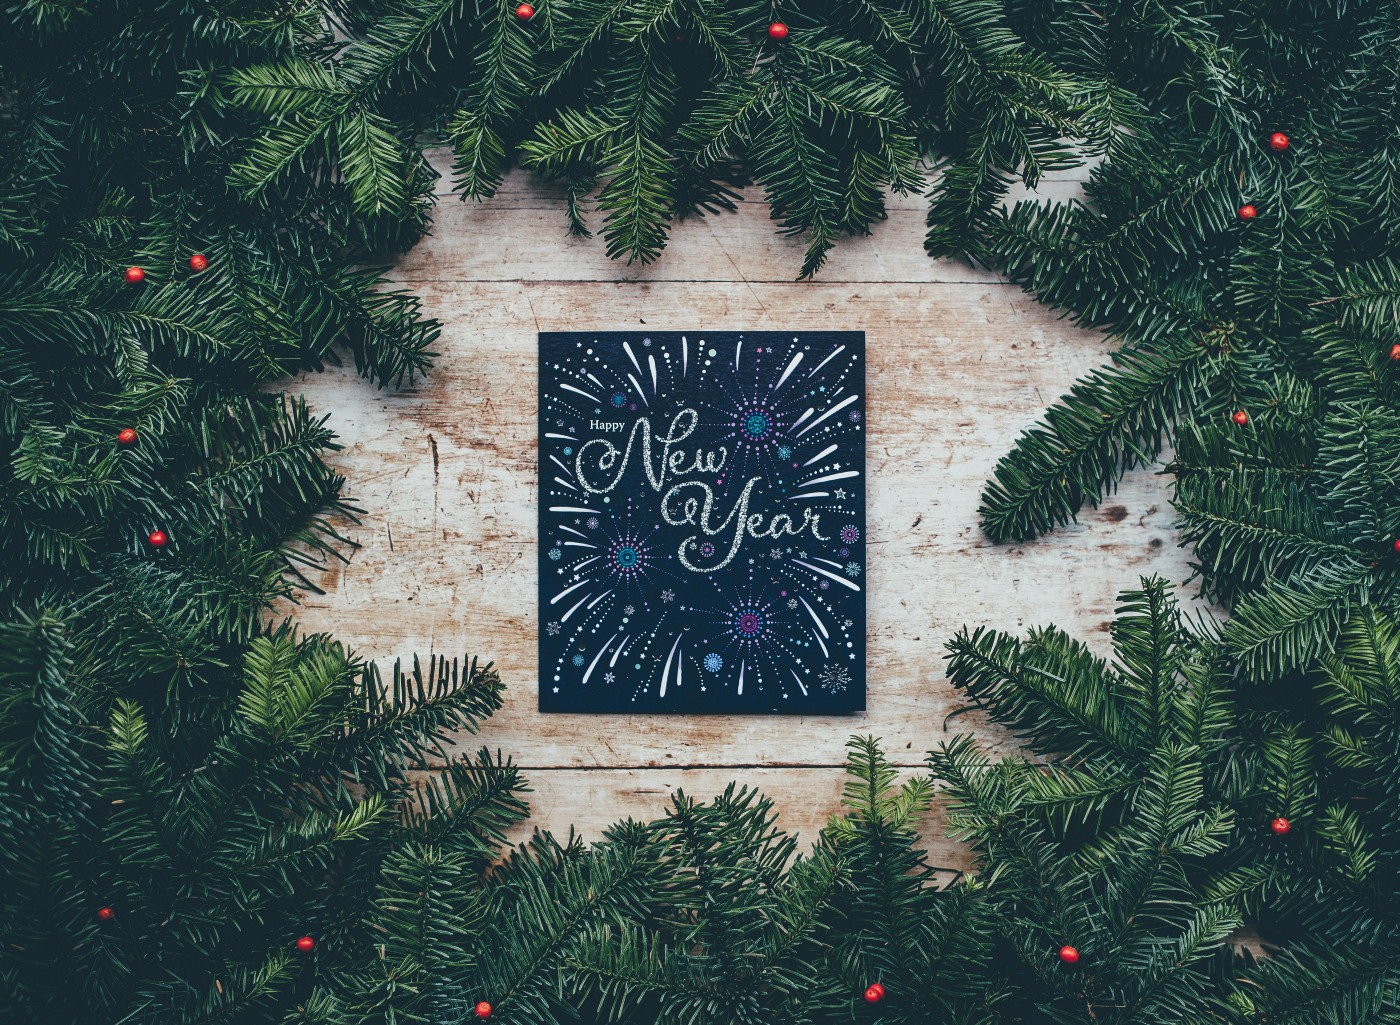 Photo of pine wreath around a greeting card that says New Year